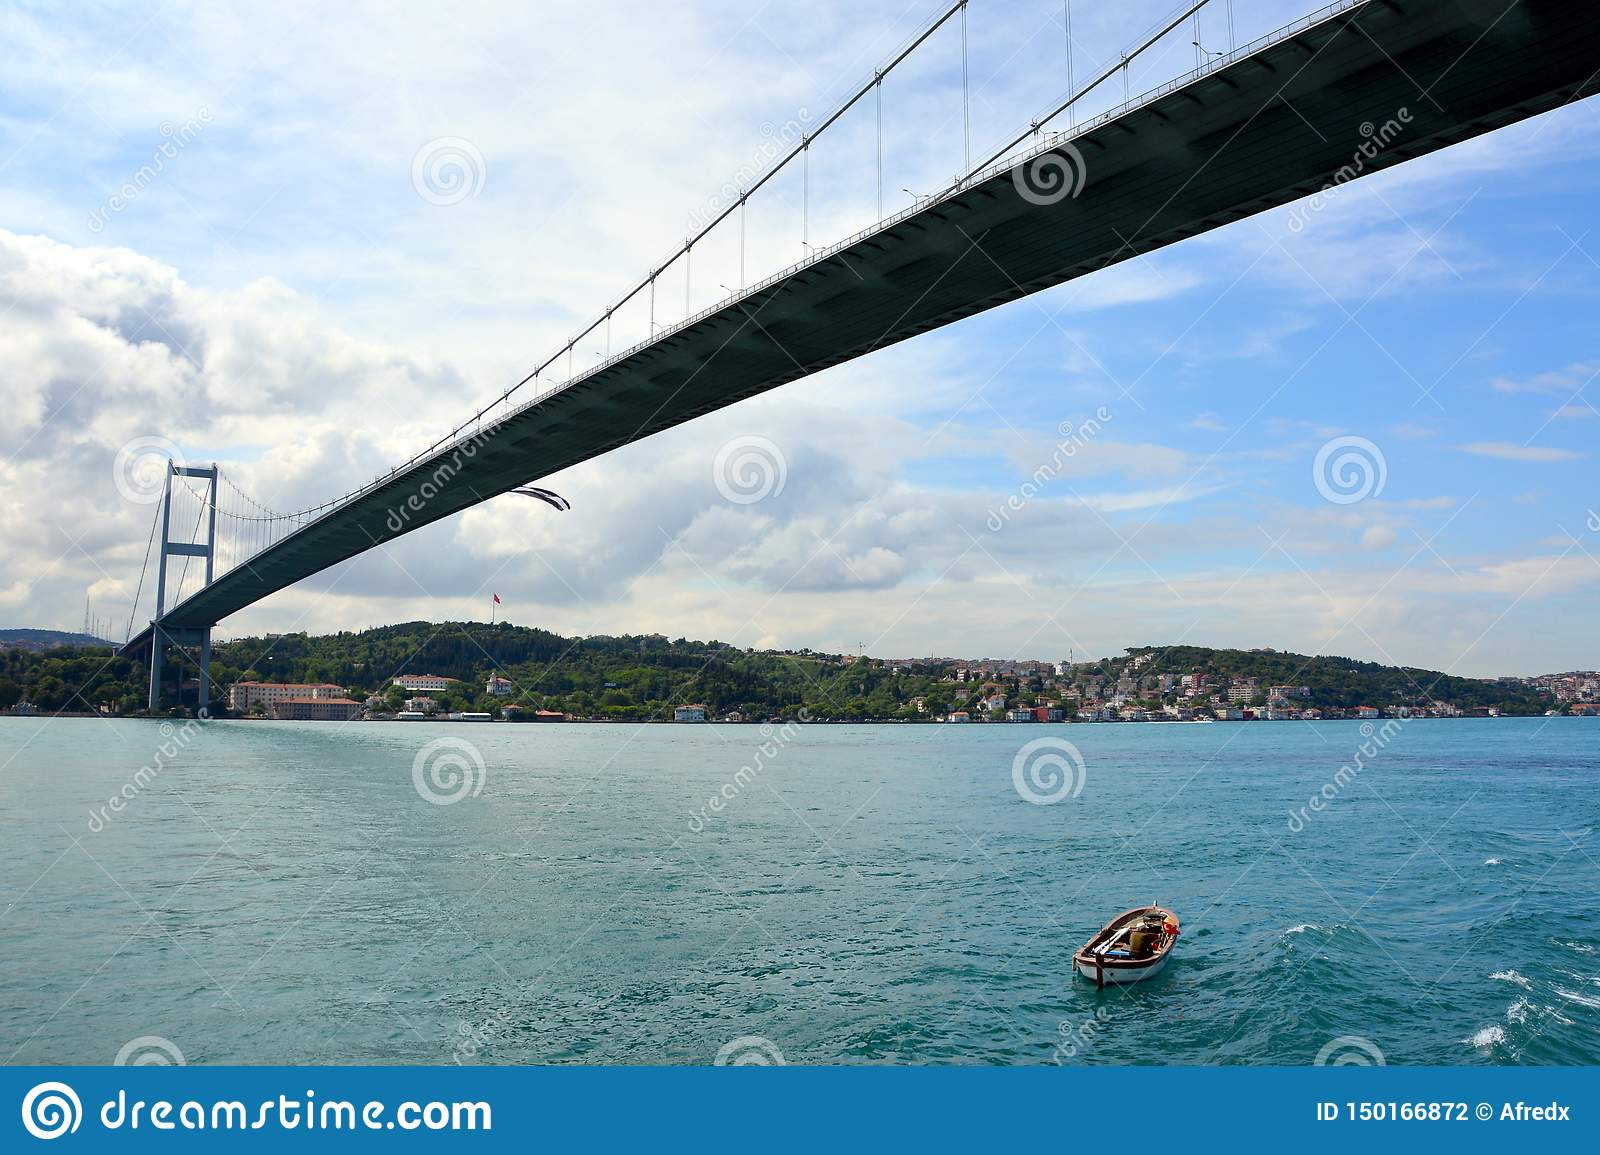 View and sight of Bosphorus, Istanbul, Turkey